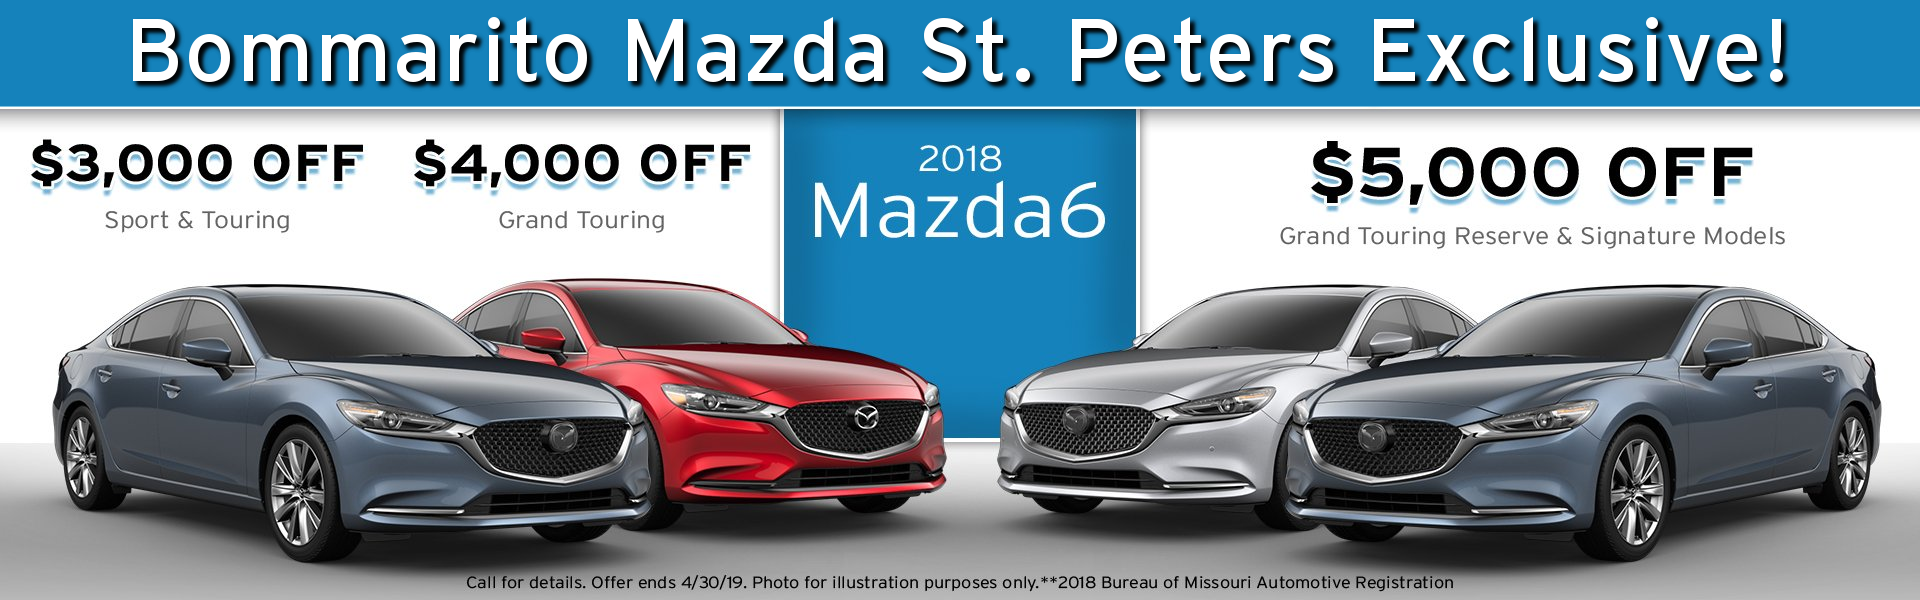 St Peters St Louis Mo Mazda Bommarito Mazda St Peters